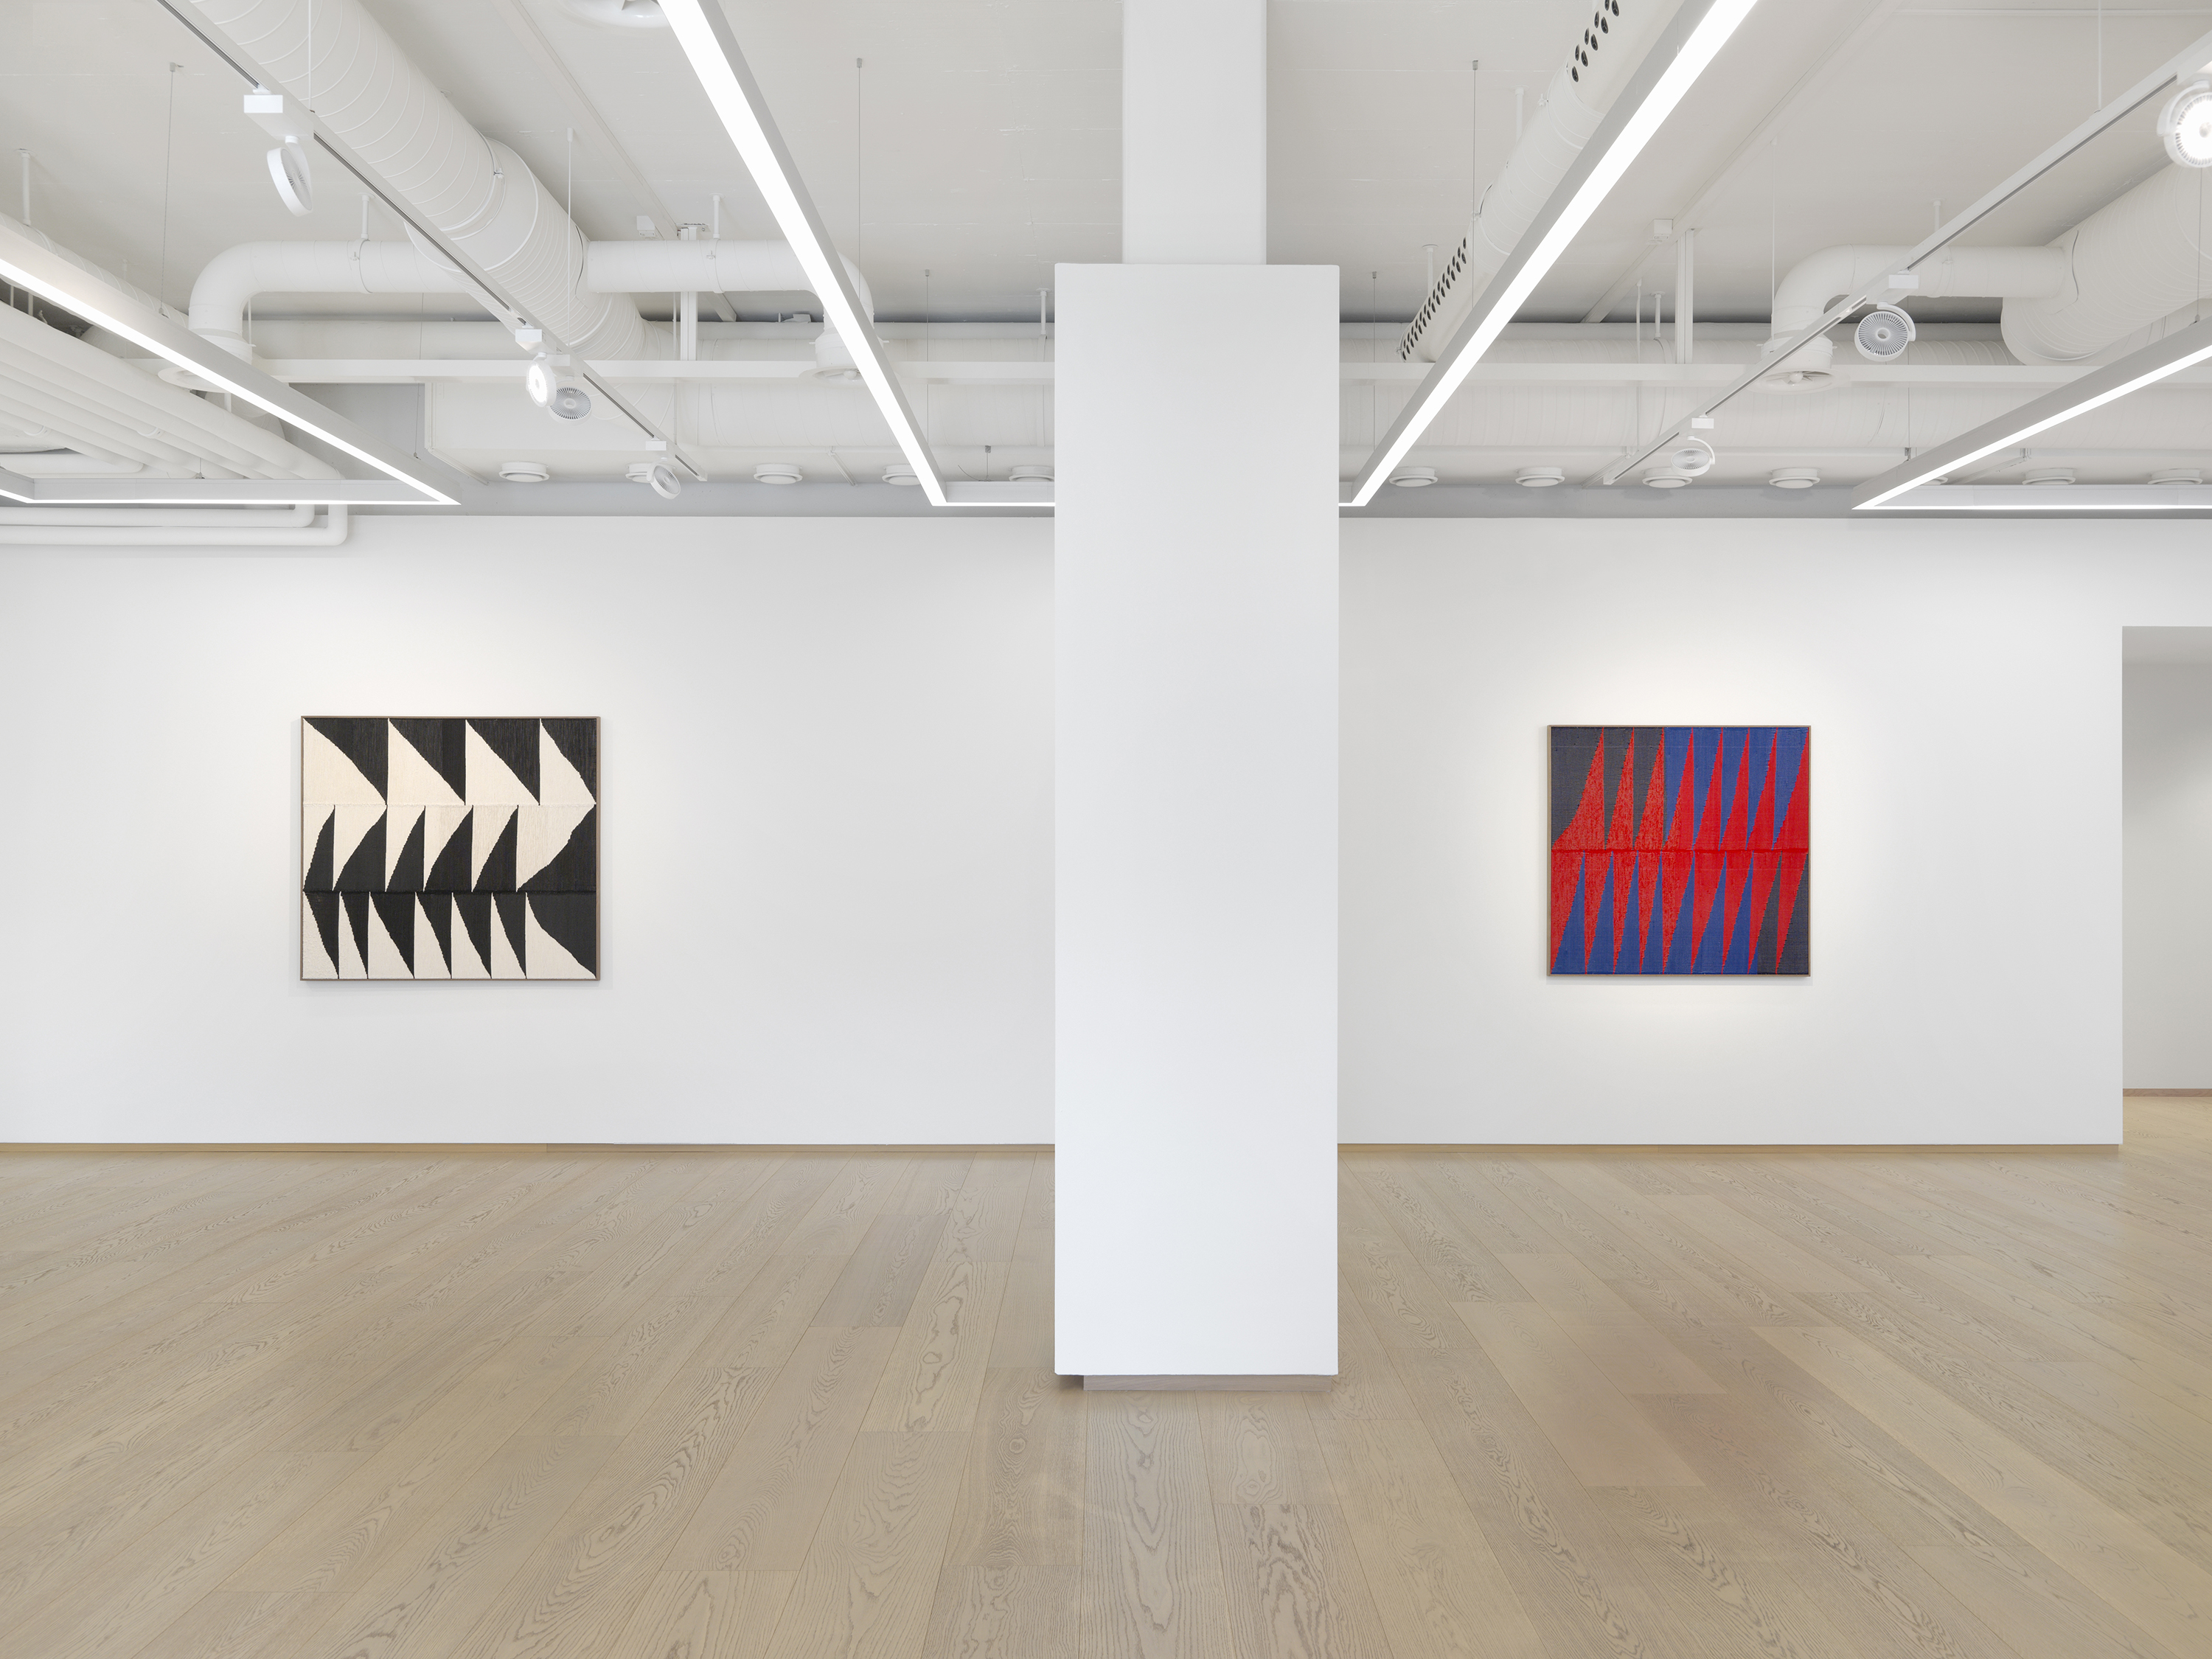 Installation View, Brent Wadden: Take What You Need, March 26 – May 15, 2021, Pace Gallery, Geneva. © Brent Wadden courtesy Pace Gallery and Peres Projects, Berlin. Photo: Annik Wetter, courtesy Pace Gallery